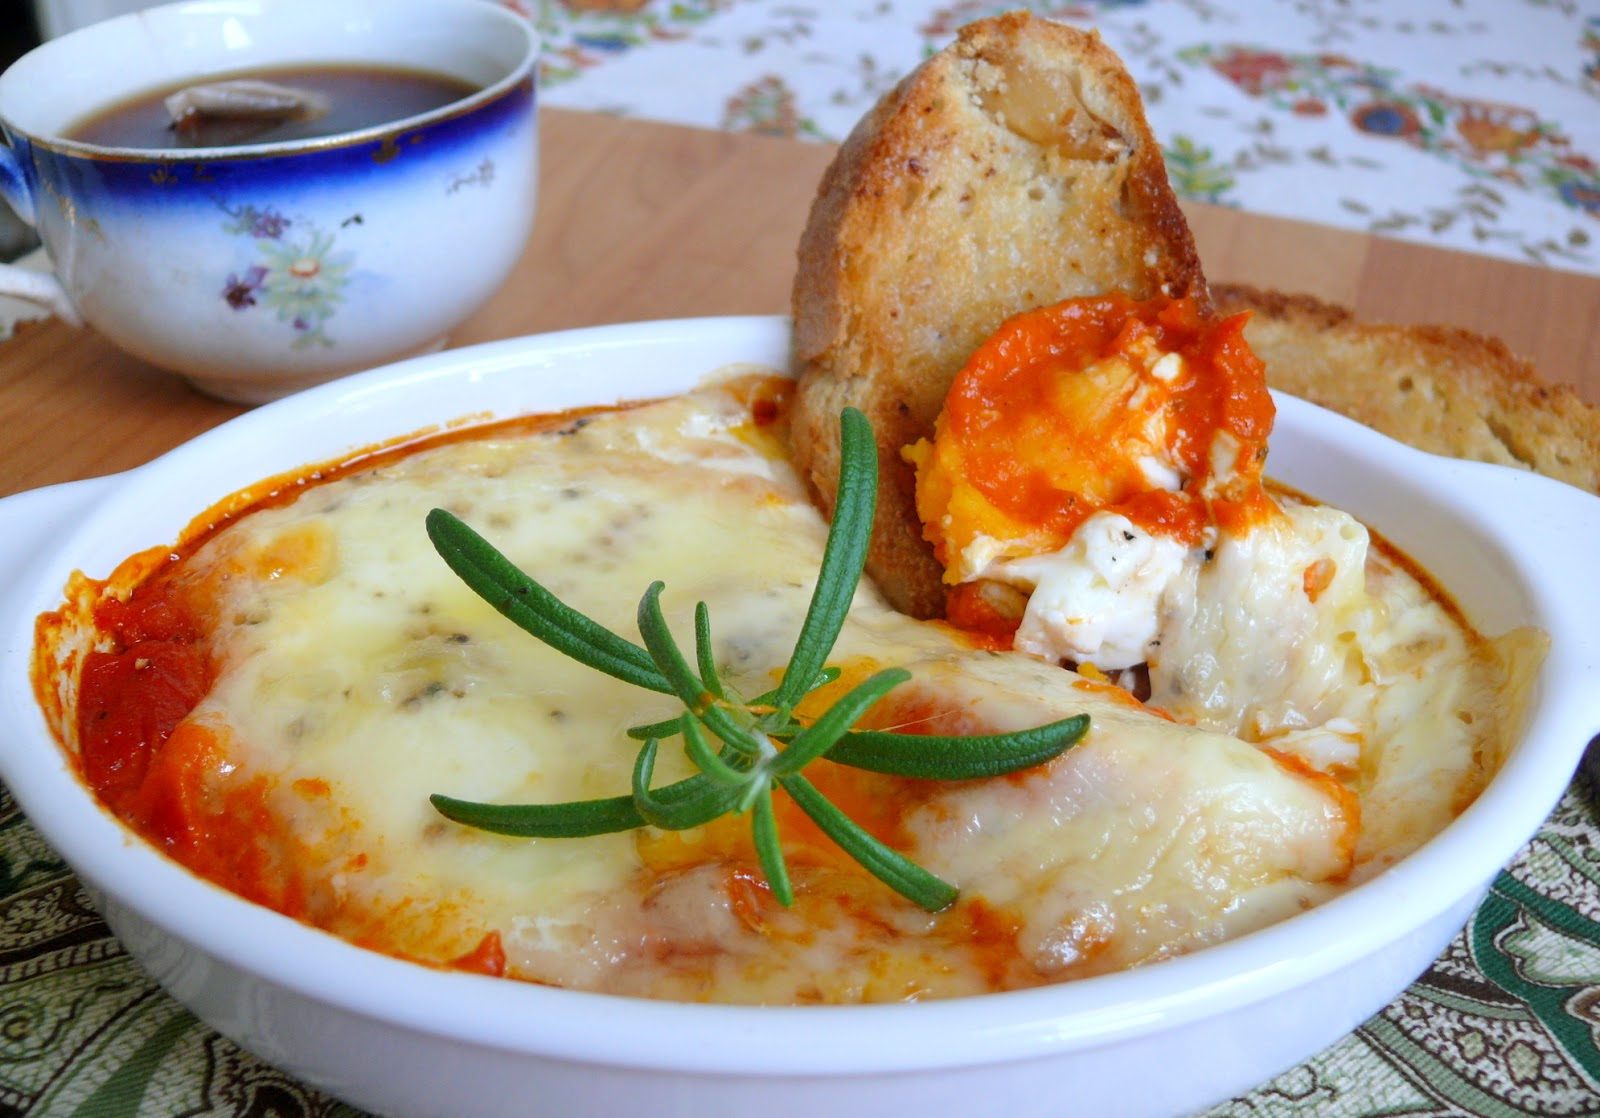 ... of Little Pleasures: Baked Eggs in Roasted Pepper and Tomato Sauce